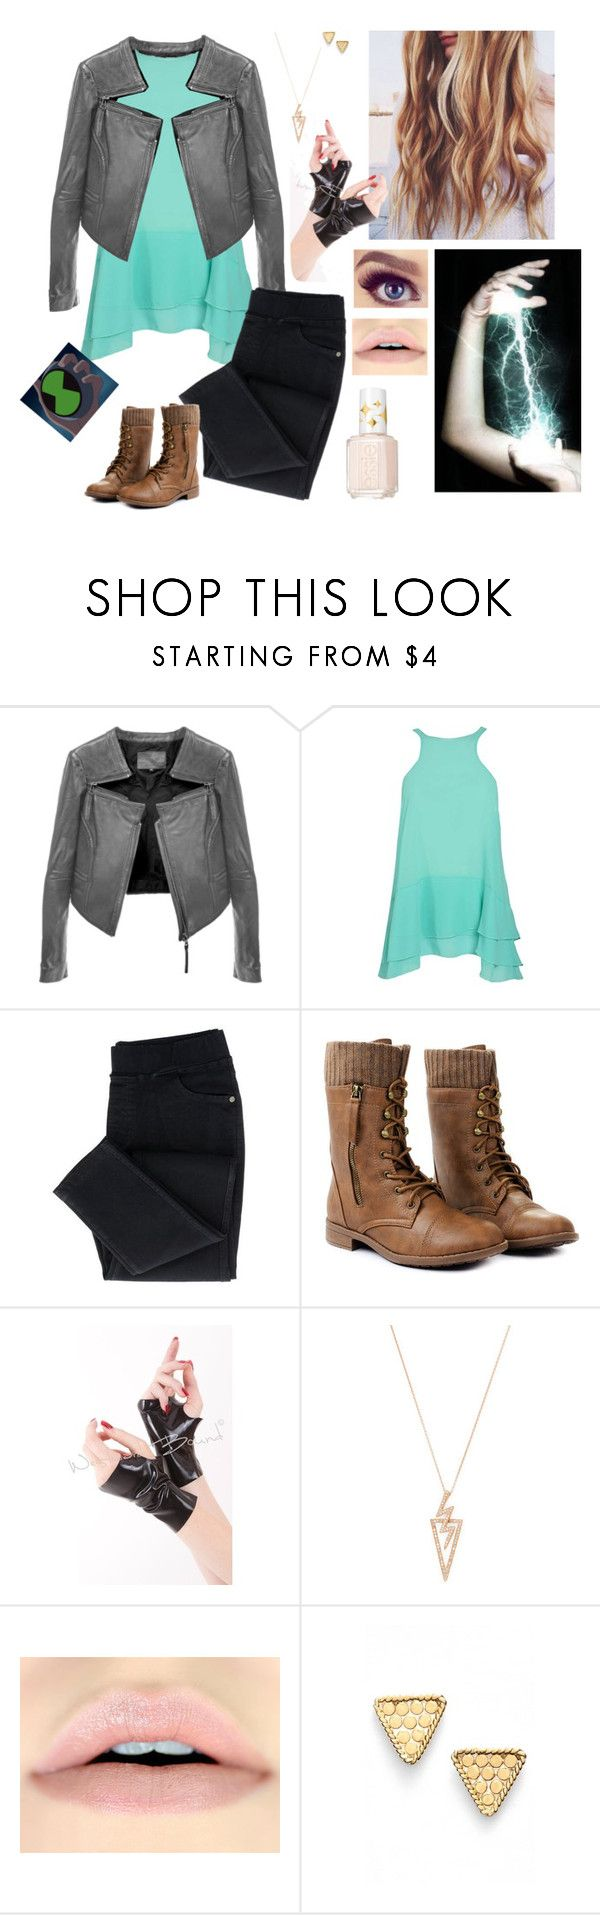 """Bailey Ranch (Ben 10: Alien Force)"" by mjzahner ❤ liked on Polyvore featuring Linea Pelle, Boohoo, Shay, Anna Beck and Essie"